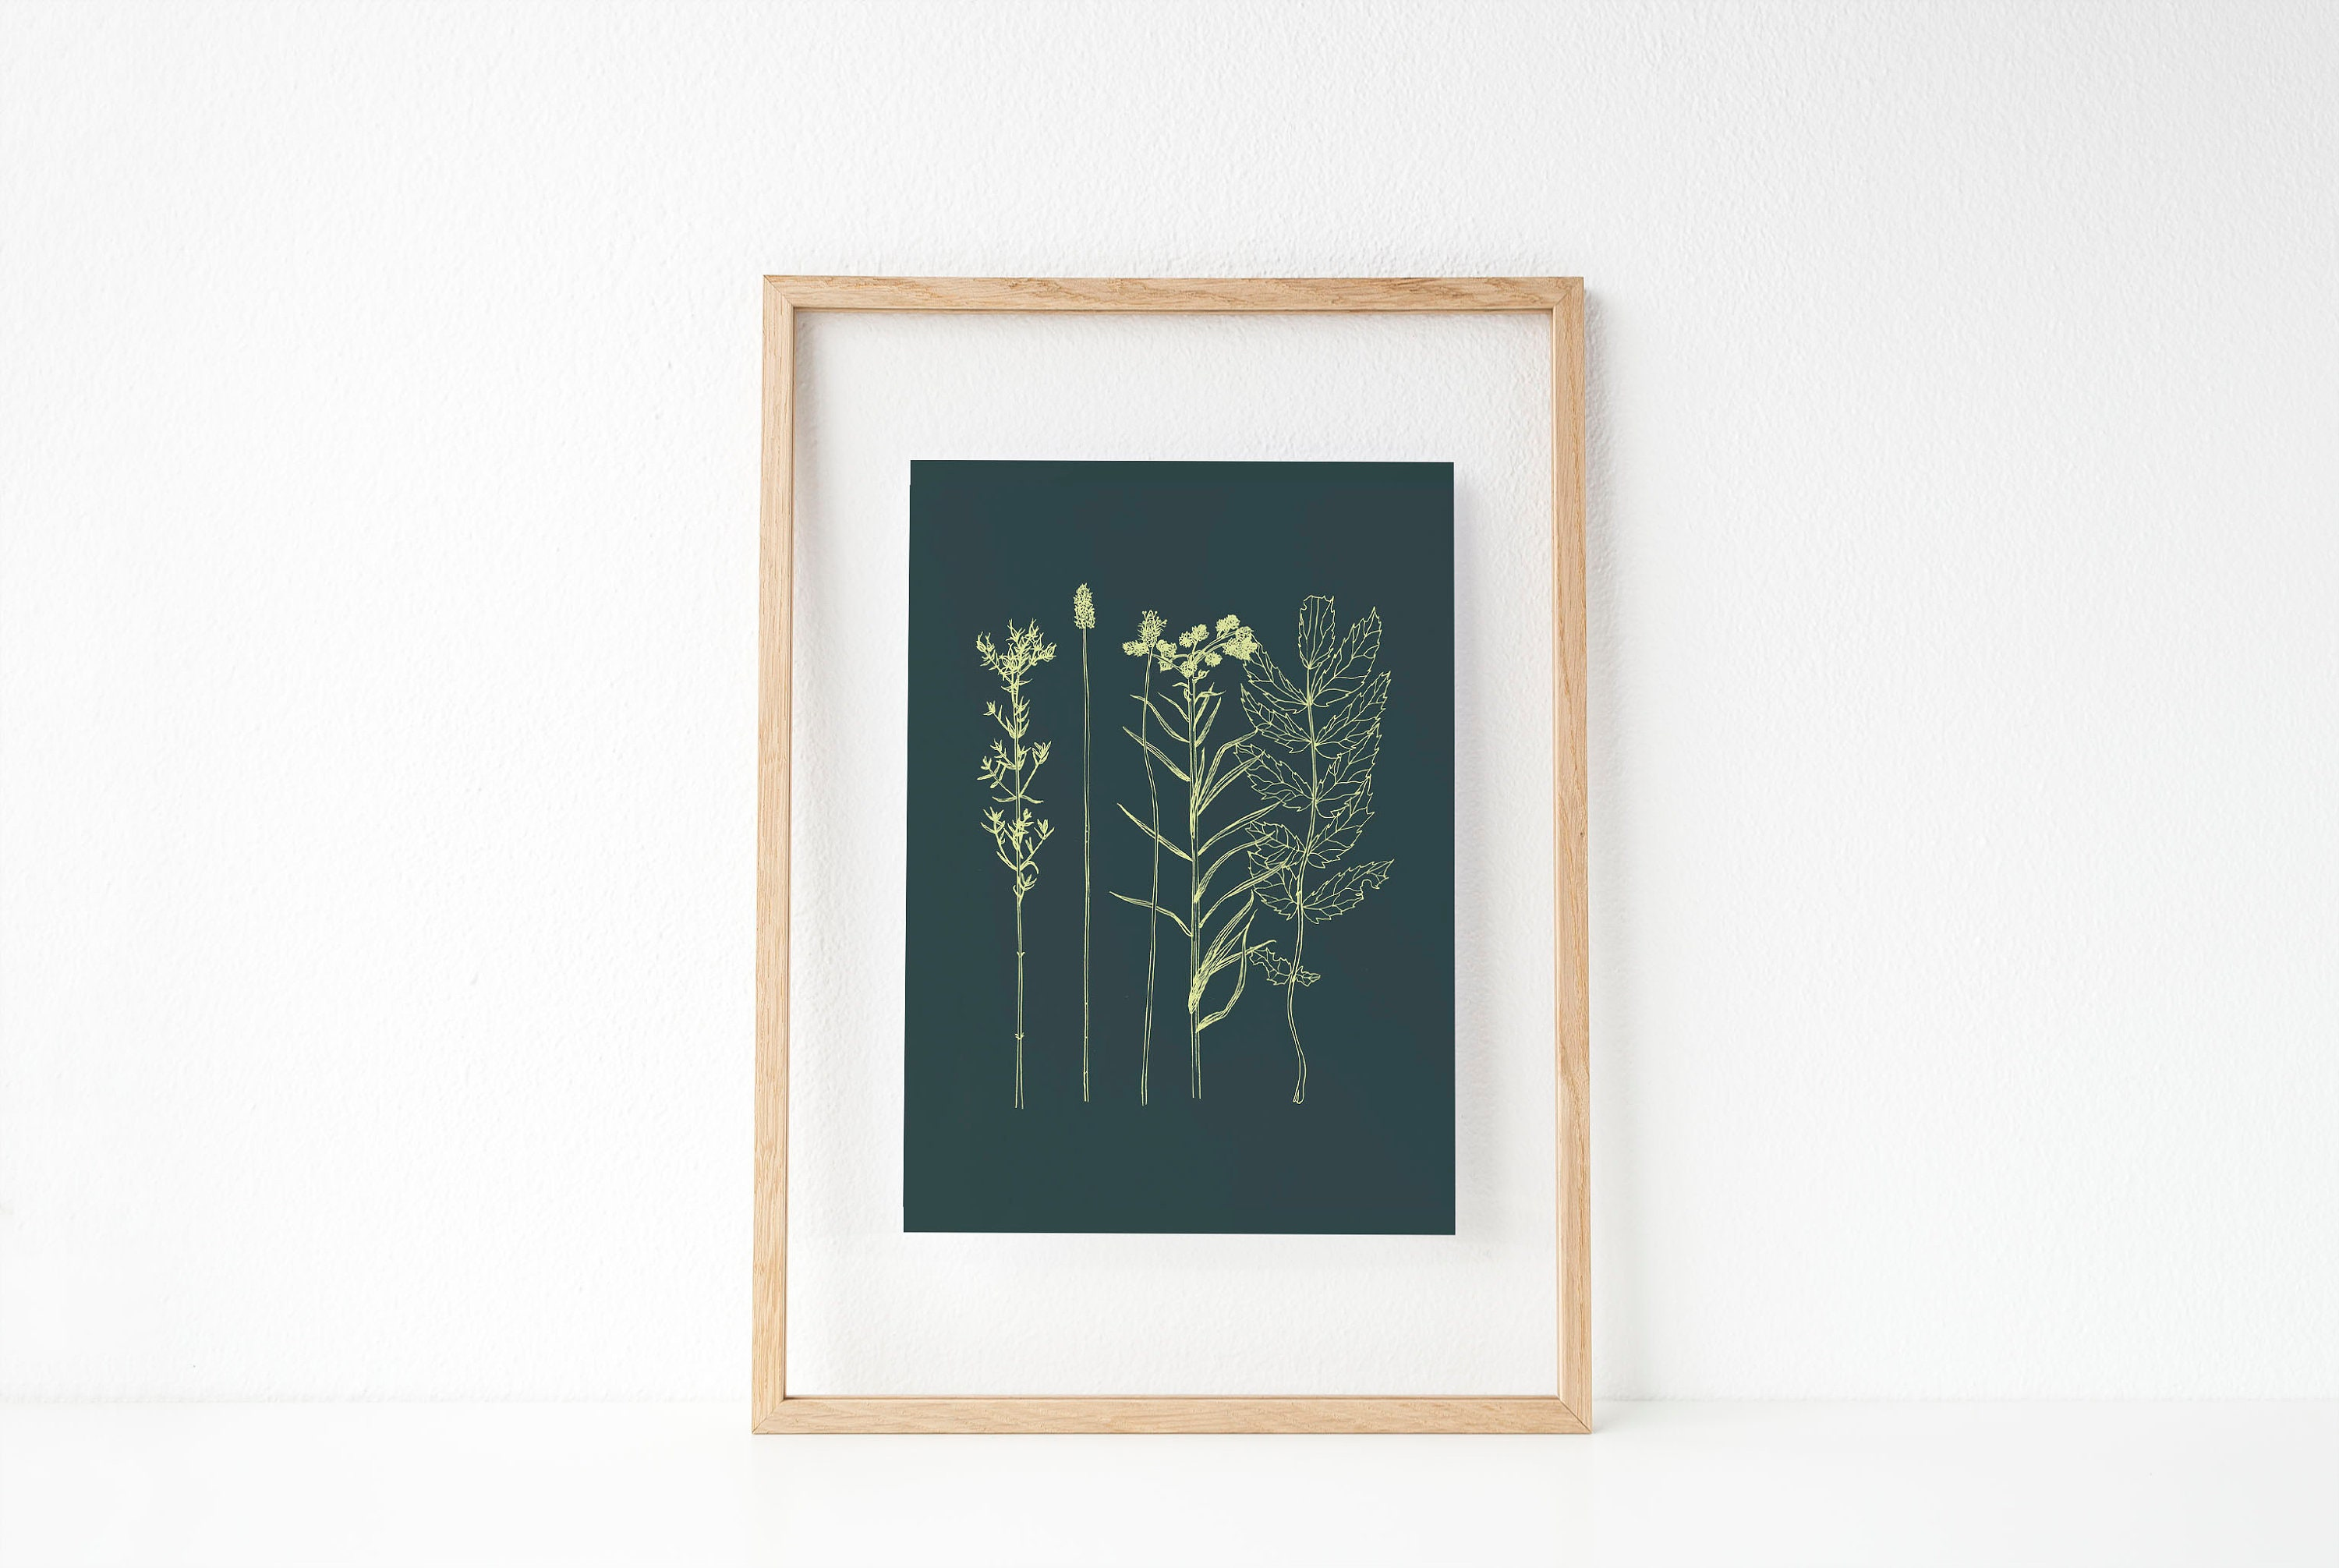 Timothy lake wall decor botanical line drawing nature zoom fandeluxe Gallery